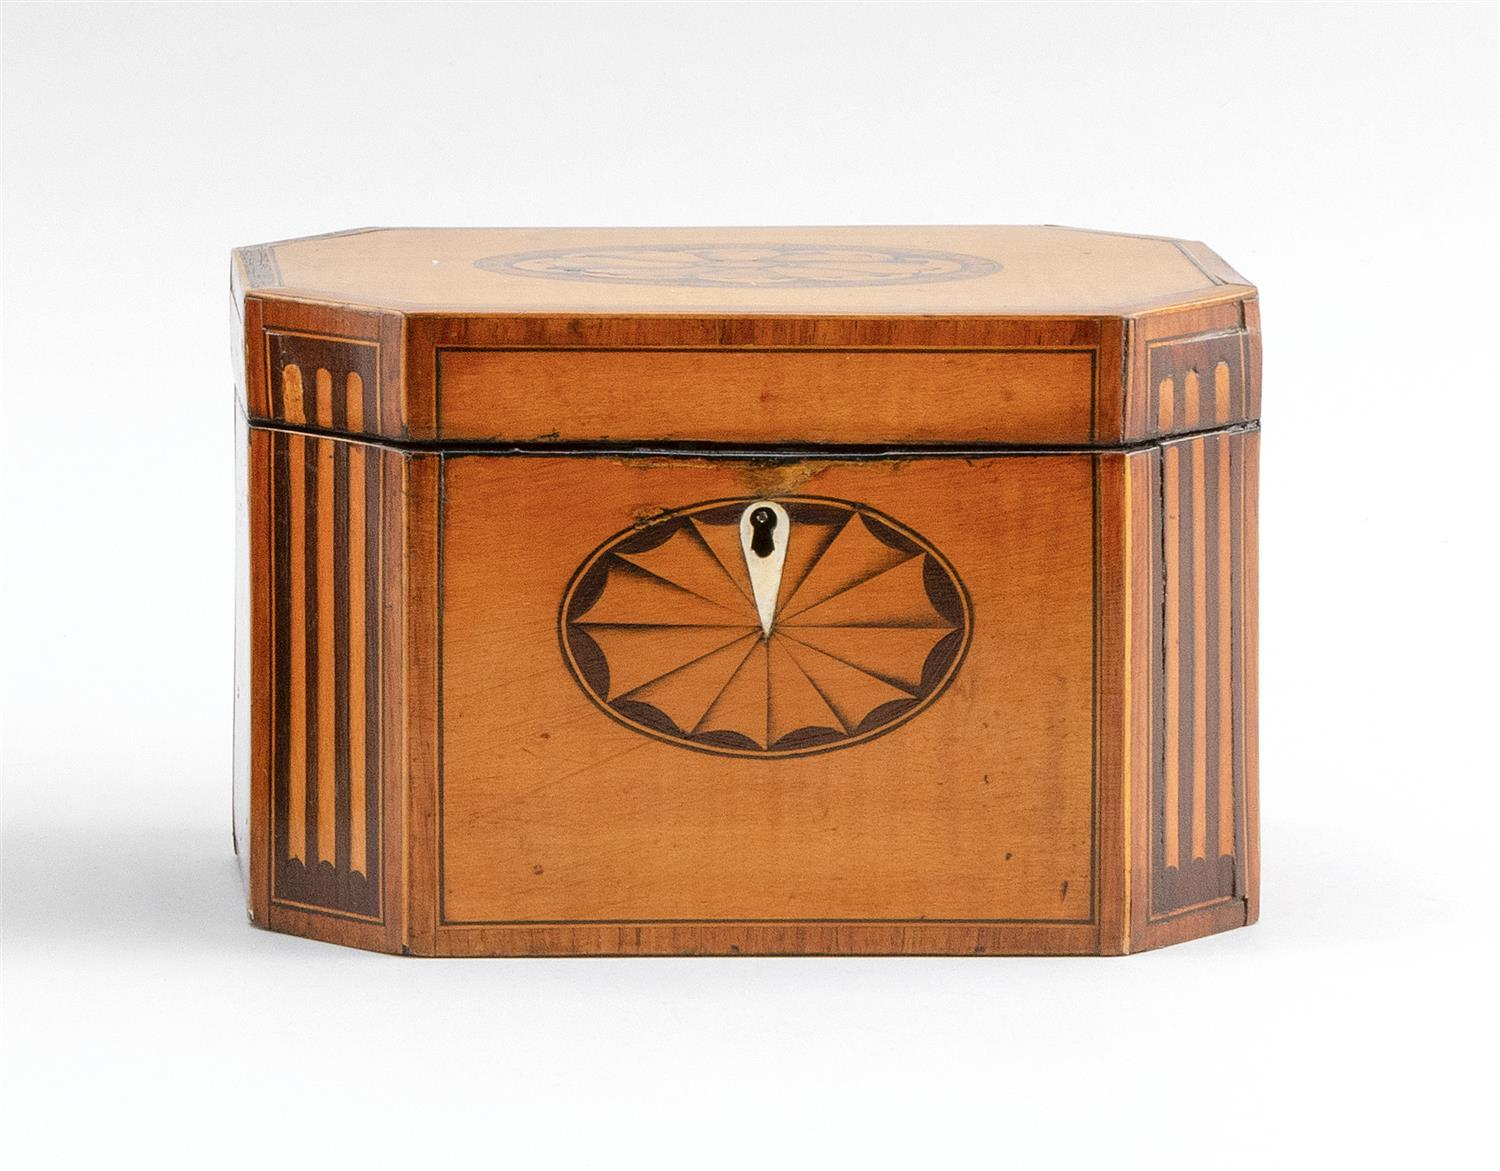 "ENGLISH SATINWOOD AND FRUITWOOD INLAID TEA CADDY Octagonal, with lift top and fitted interior. Height 4.75"". Width 7.5"". Depth 4.75""."